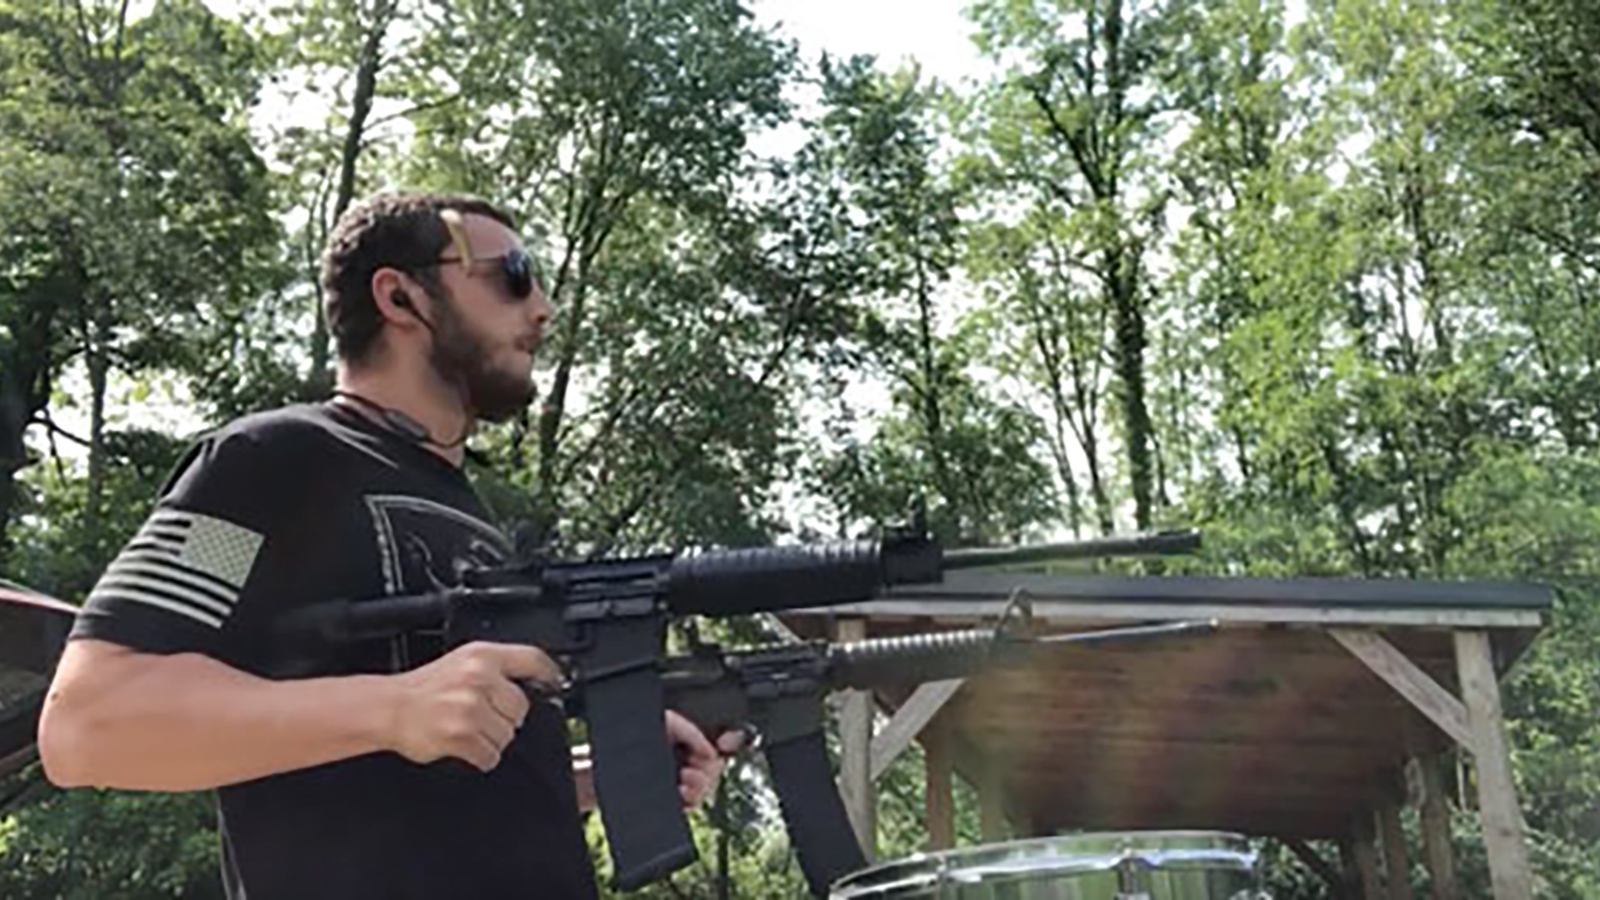 """See """"GunDrummer"""" Cover Slipknot's """"Psychosocial"""" With Semi-Automatic Rifles"""